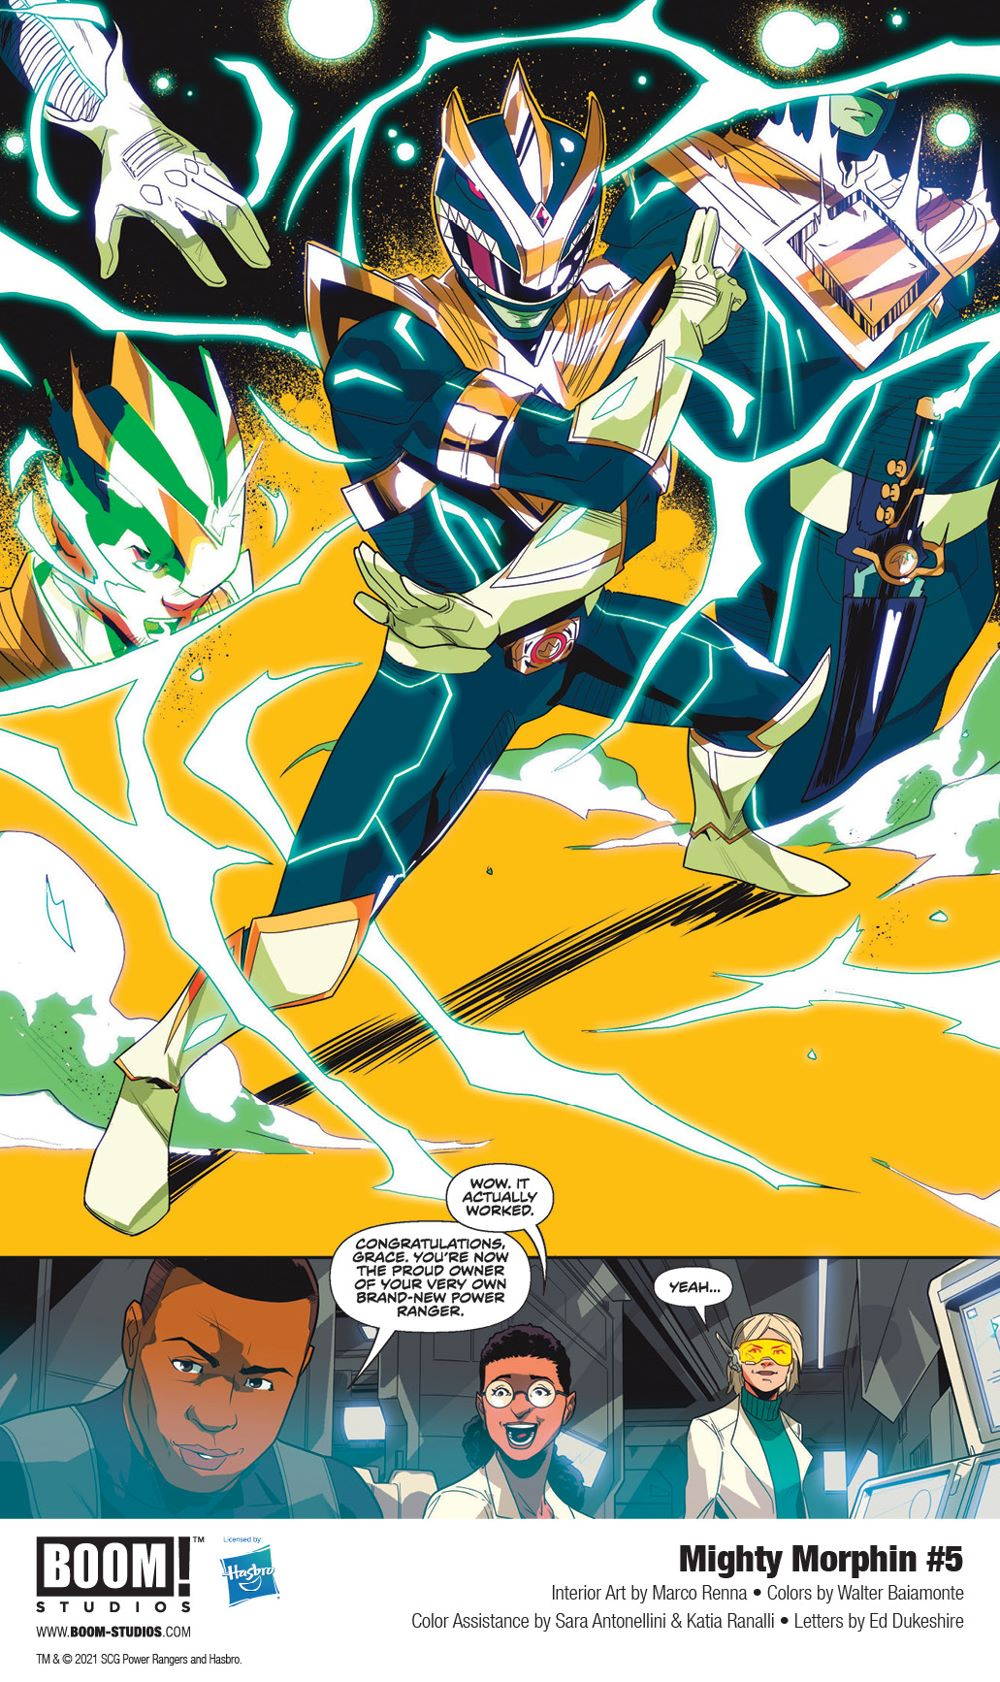 MightyMorphin_005_InteriorArt_004_PROMO First Look at BOOM! Studios' MIGHTY MORPHIN #5